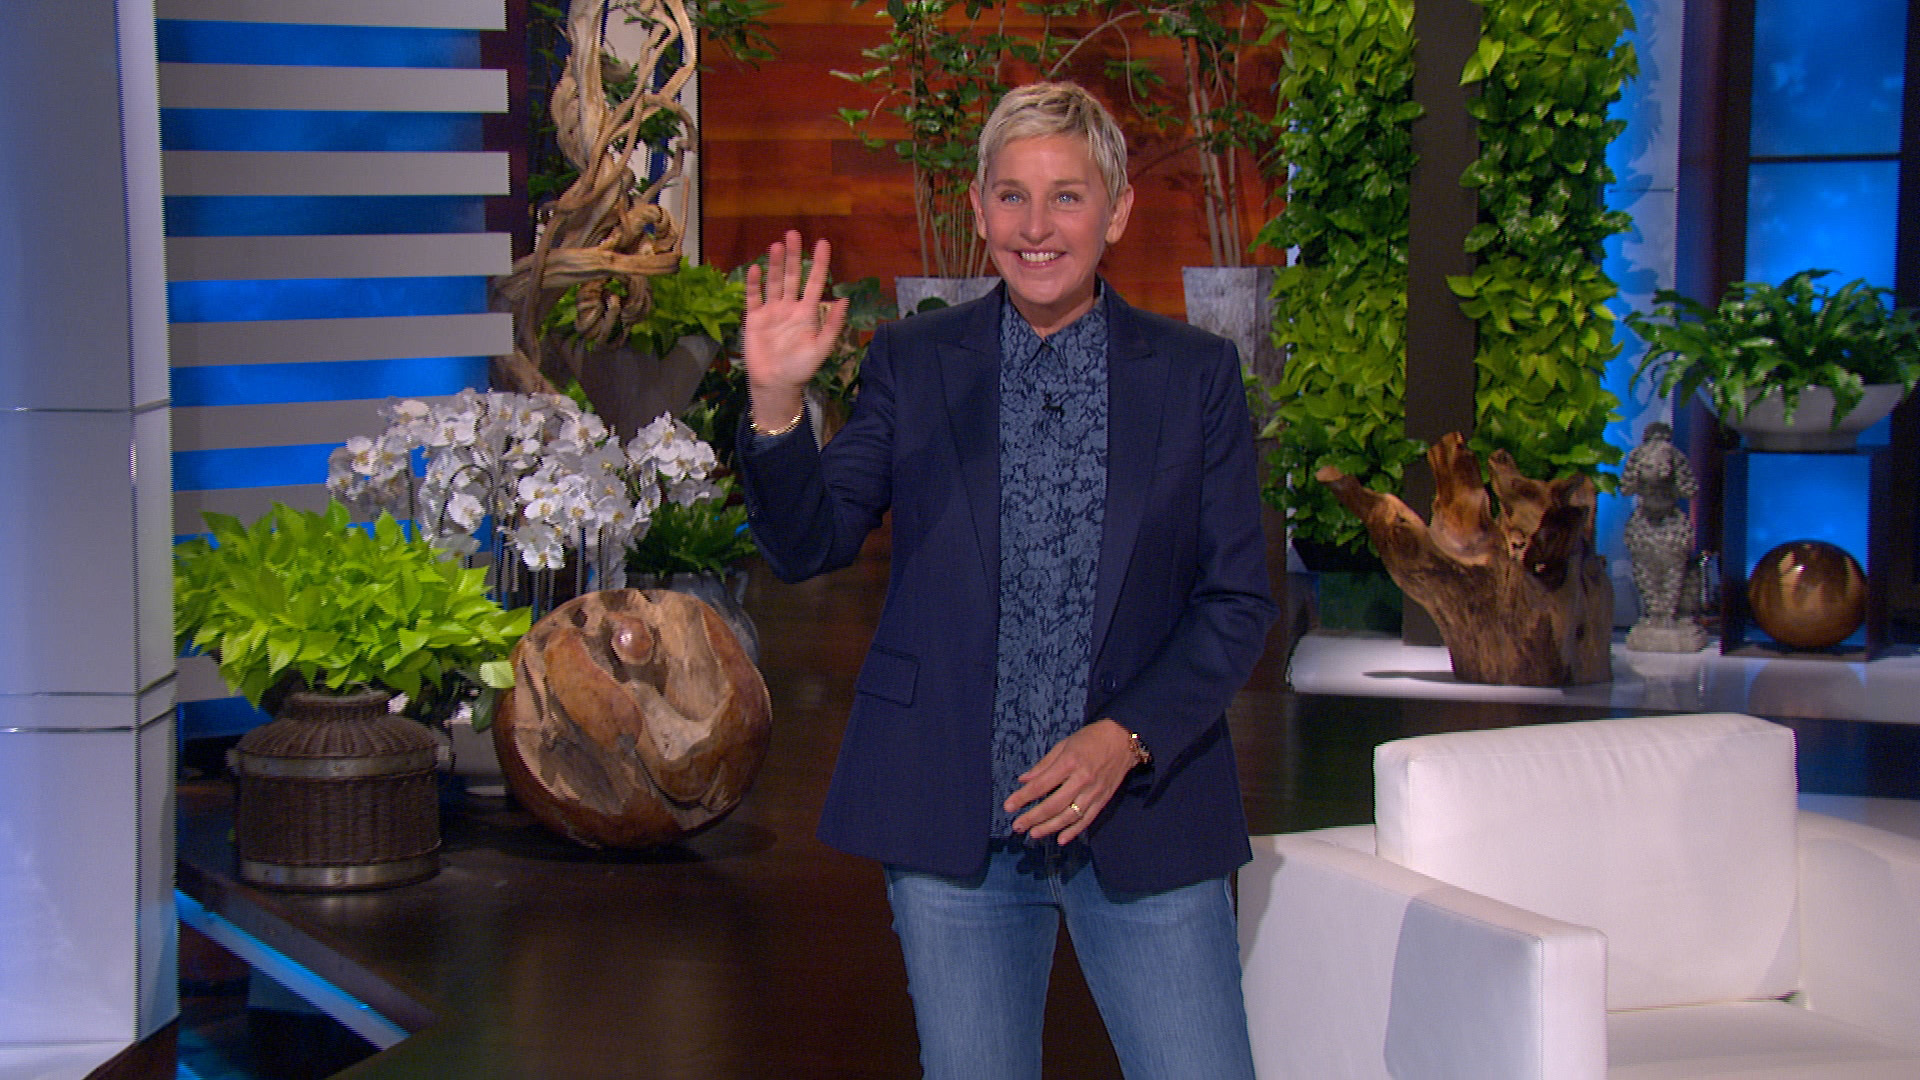 Ellen DeGeneres Show' loses 1M viewers after workplace toxicity scandal